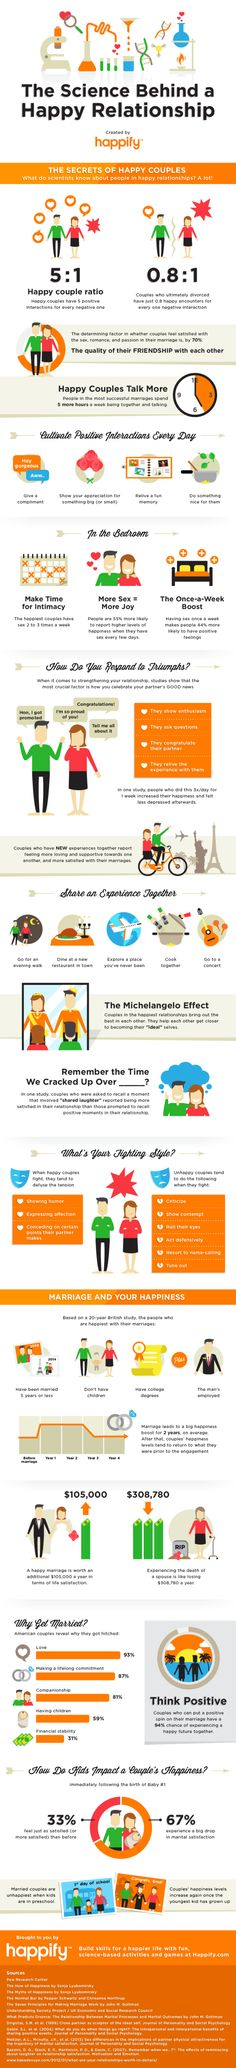 infographic on happy relationships